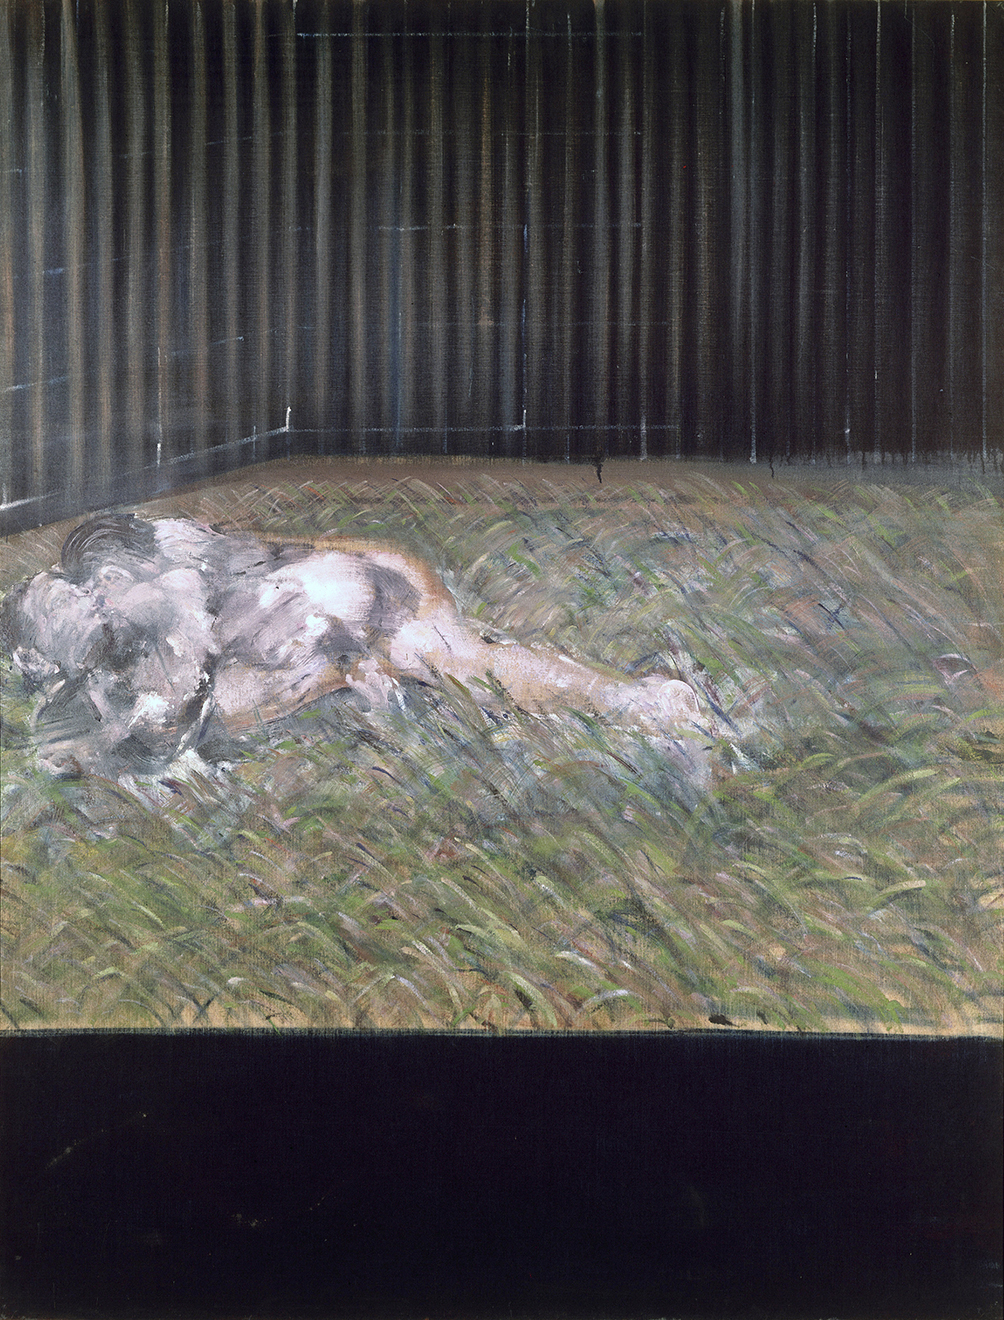 Two Figures In The Grass 1954 Francis Bacon The Estate Of Francis Bacon All Rights Reserved DACS 2015 Photo Prudence Cuming Associates Ltd